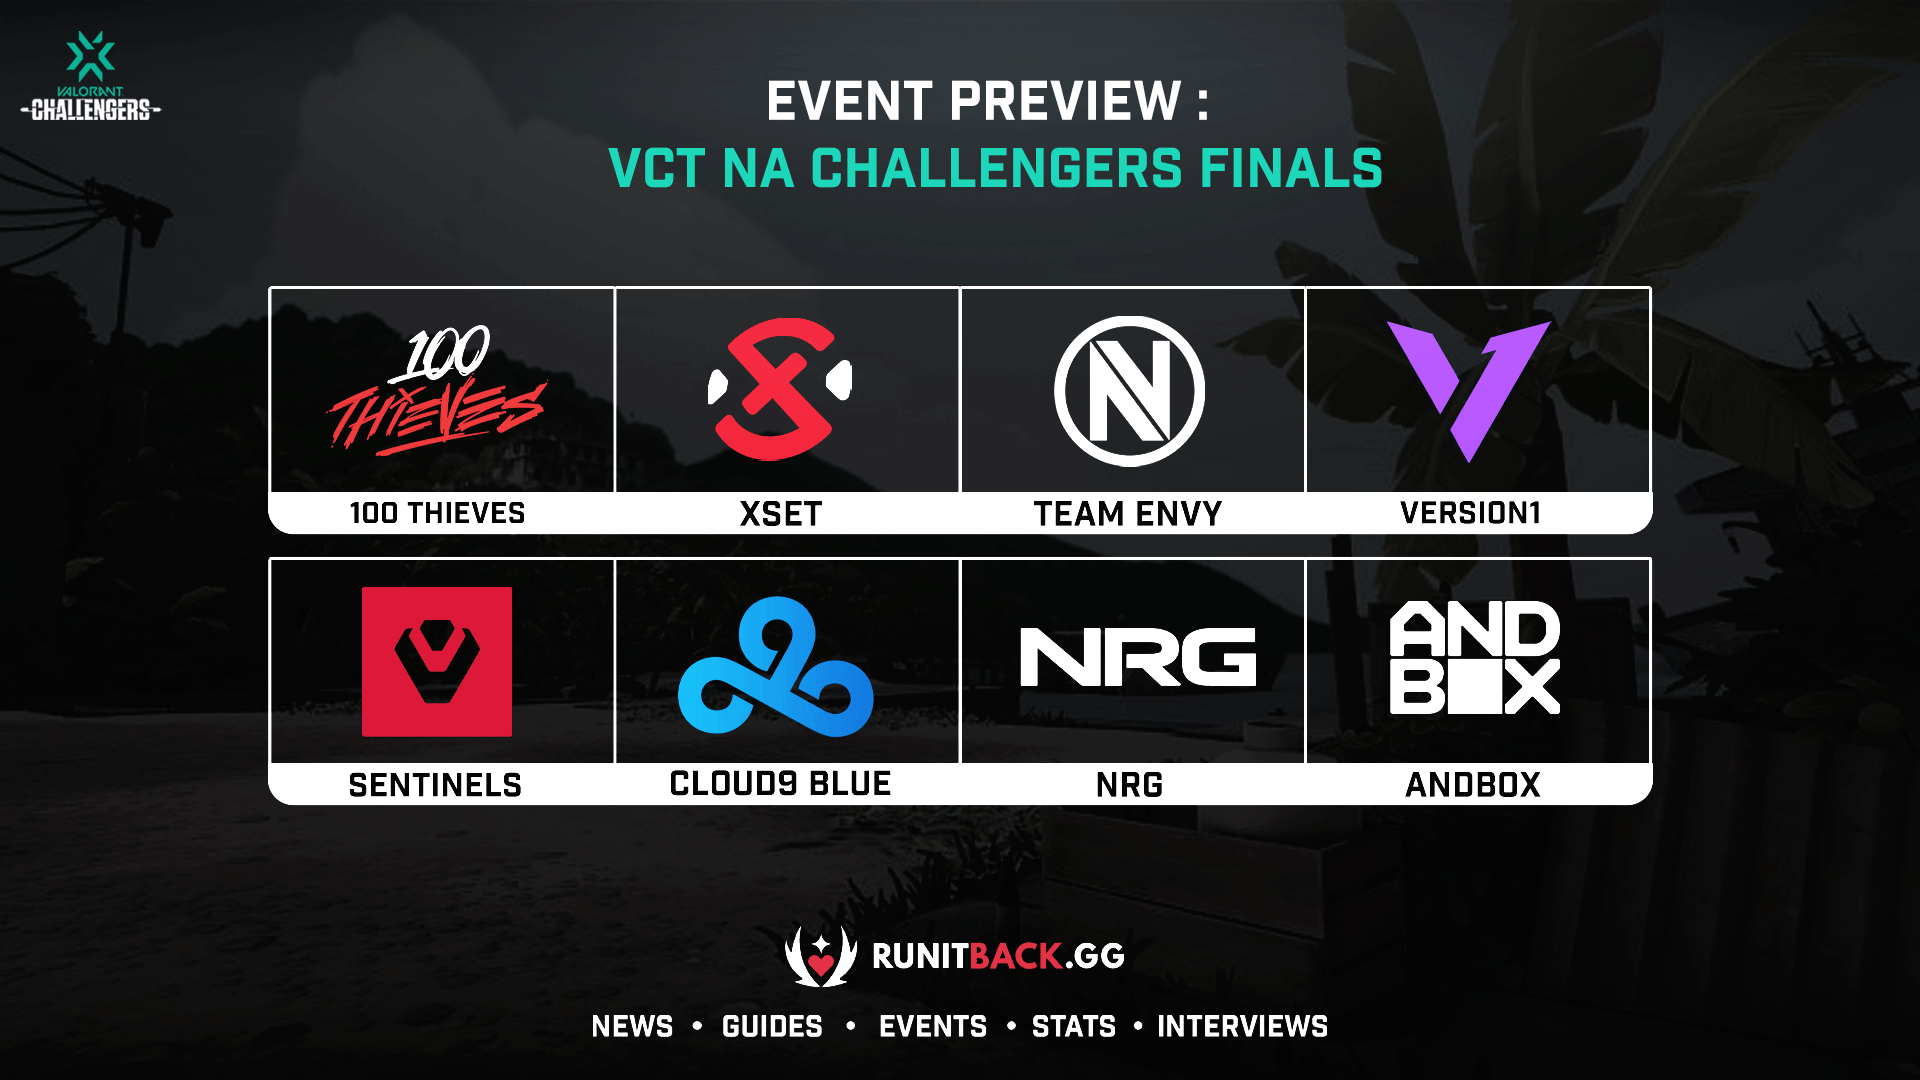 VCT NA Challengers Finals Preview